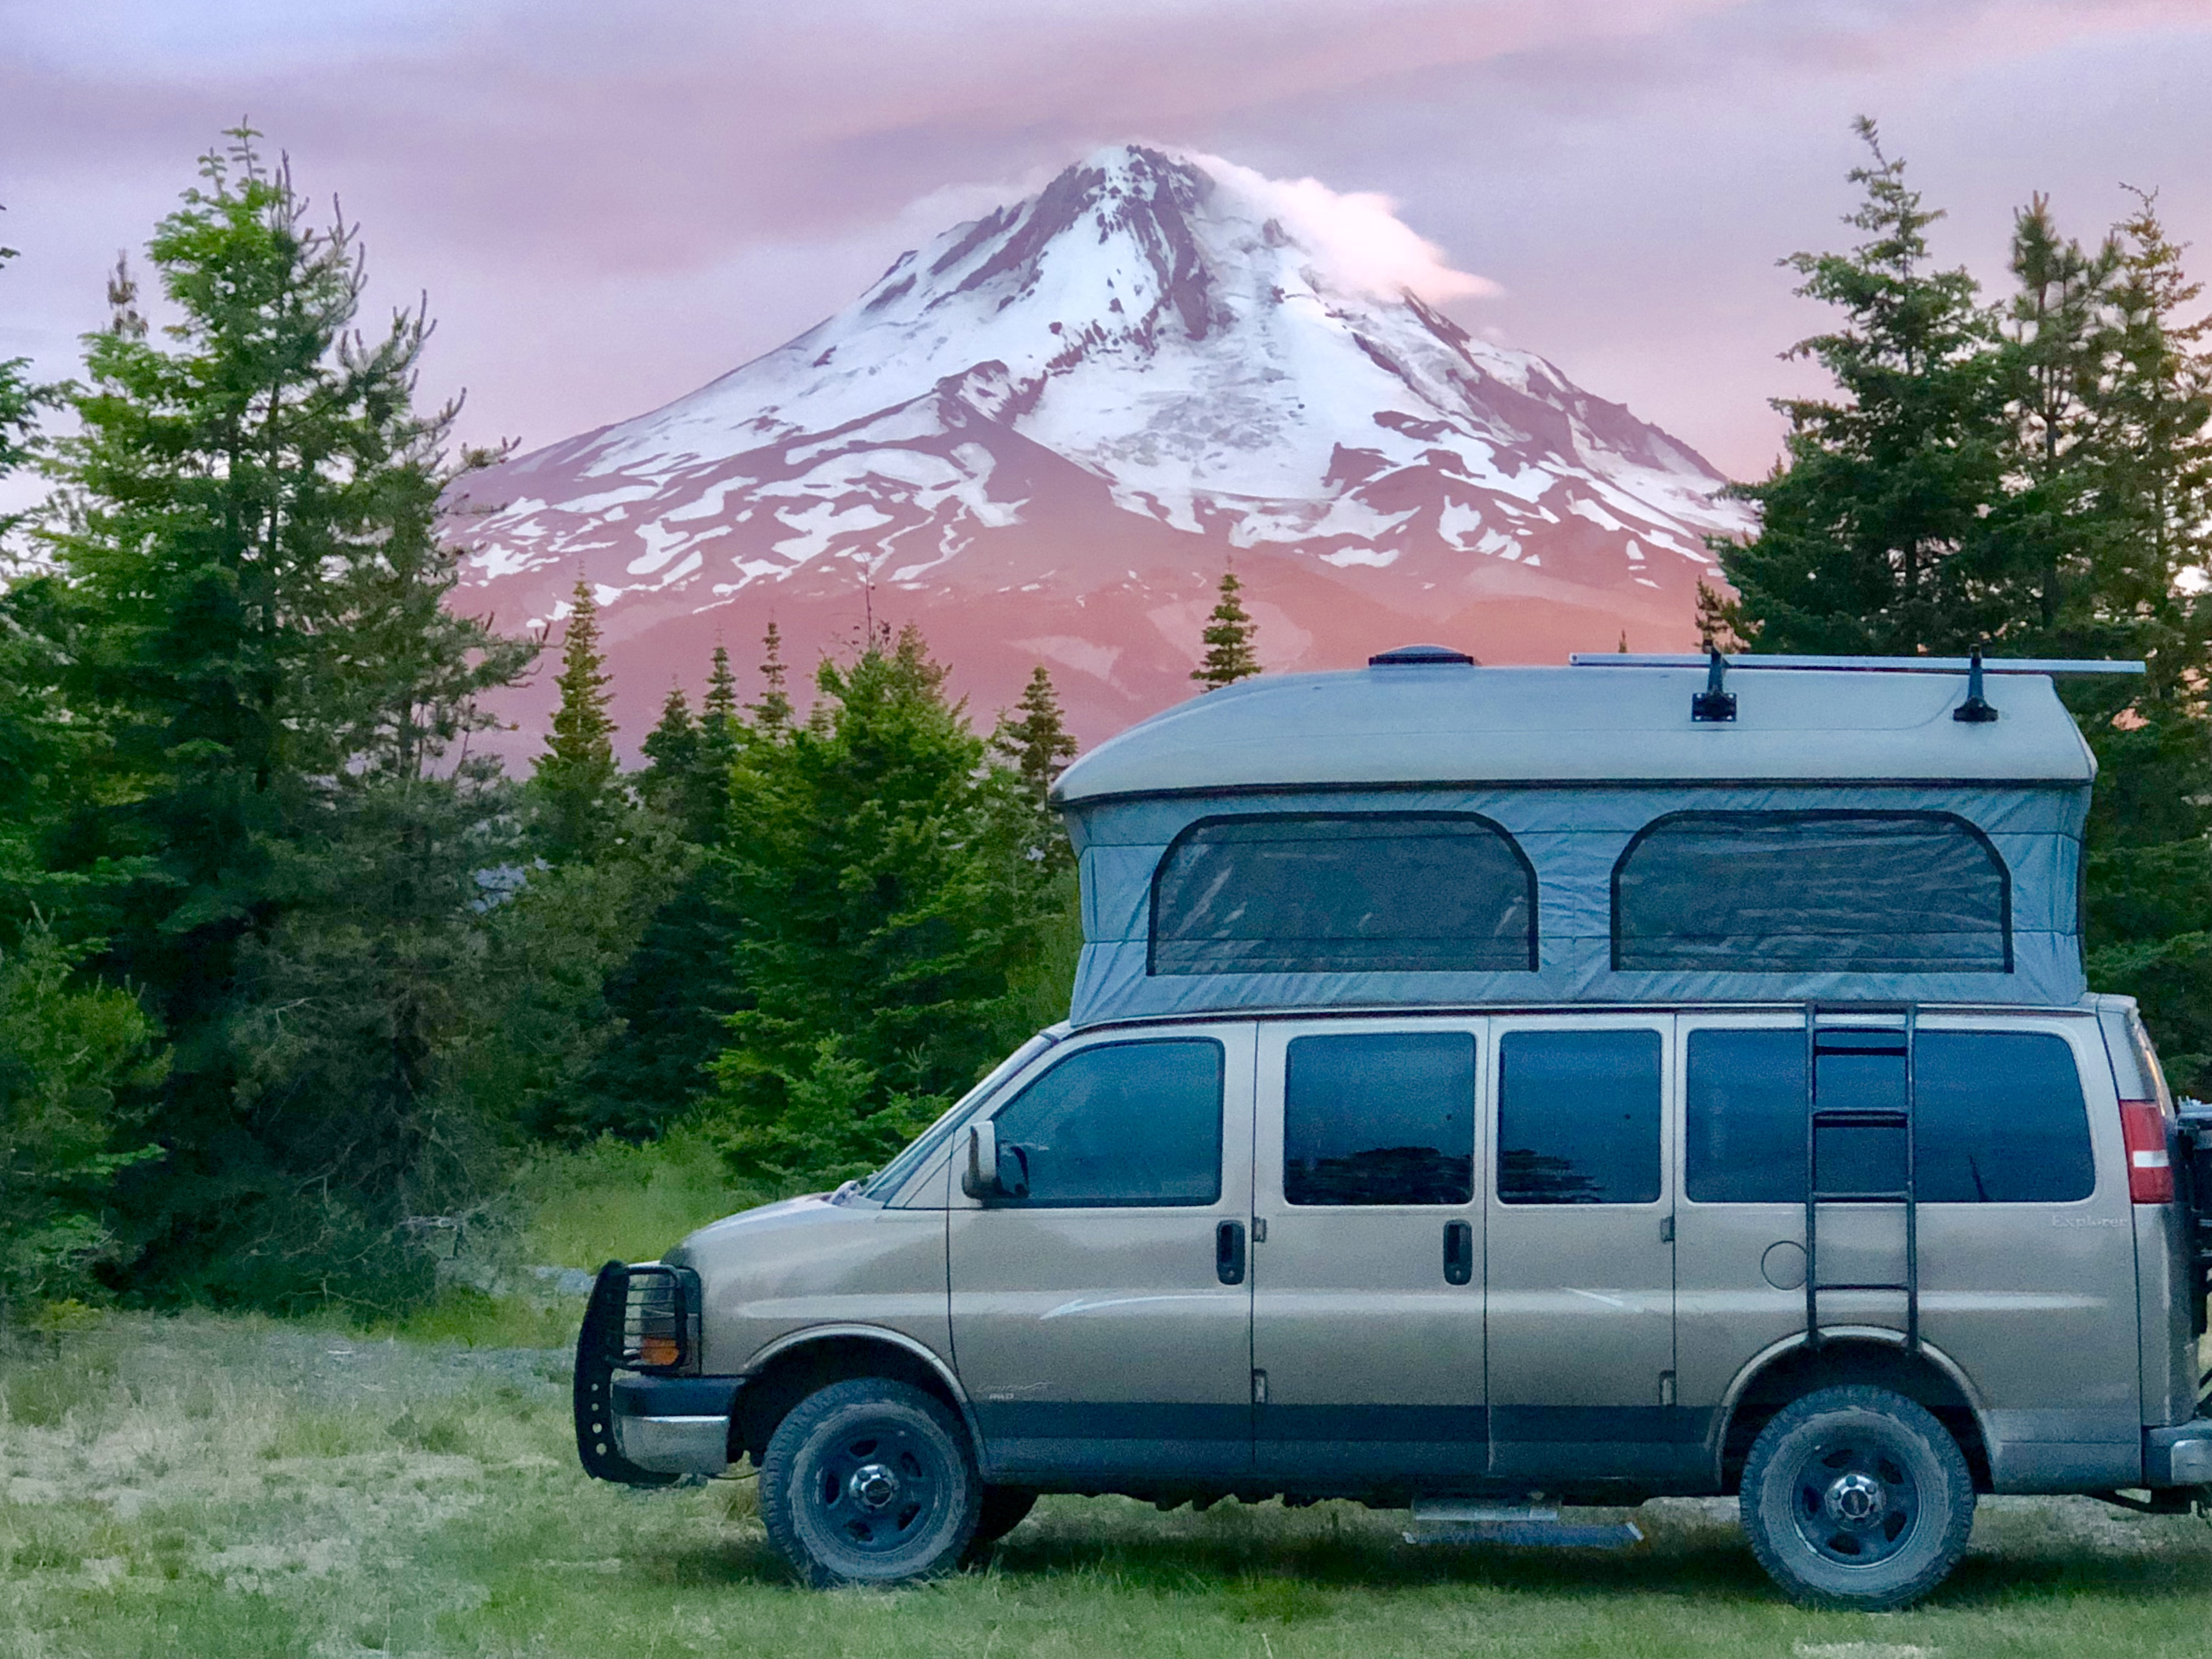 Used Vans For Sale Near Me >> Used Campers For Sale A New Website Helps You Buy A Conversion Van